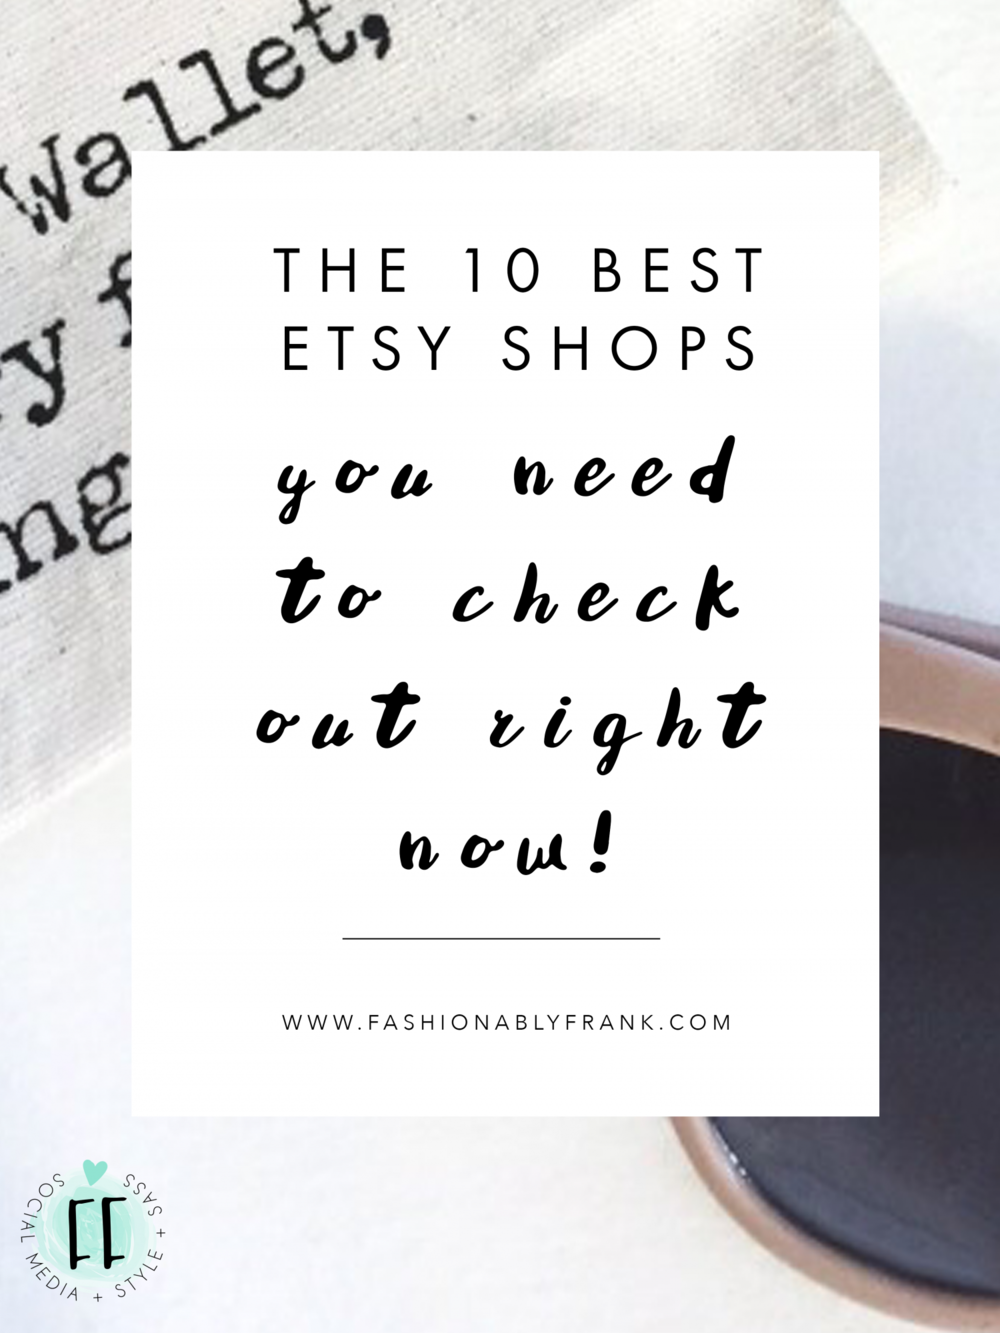 The 10 Best Etsy Shops You Need to Check Out Right Now | Fashionably Frank Blog